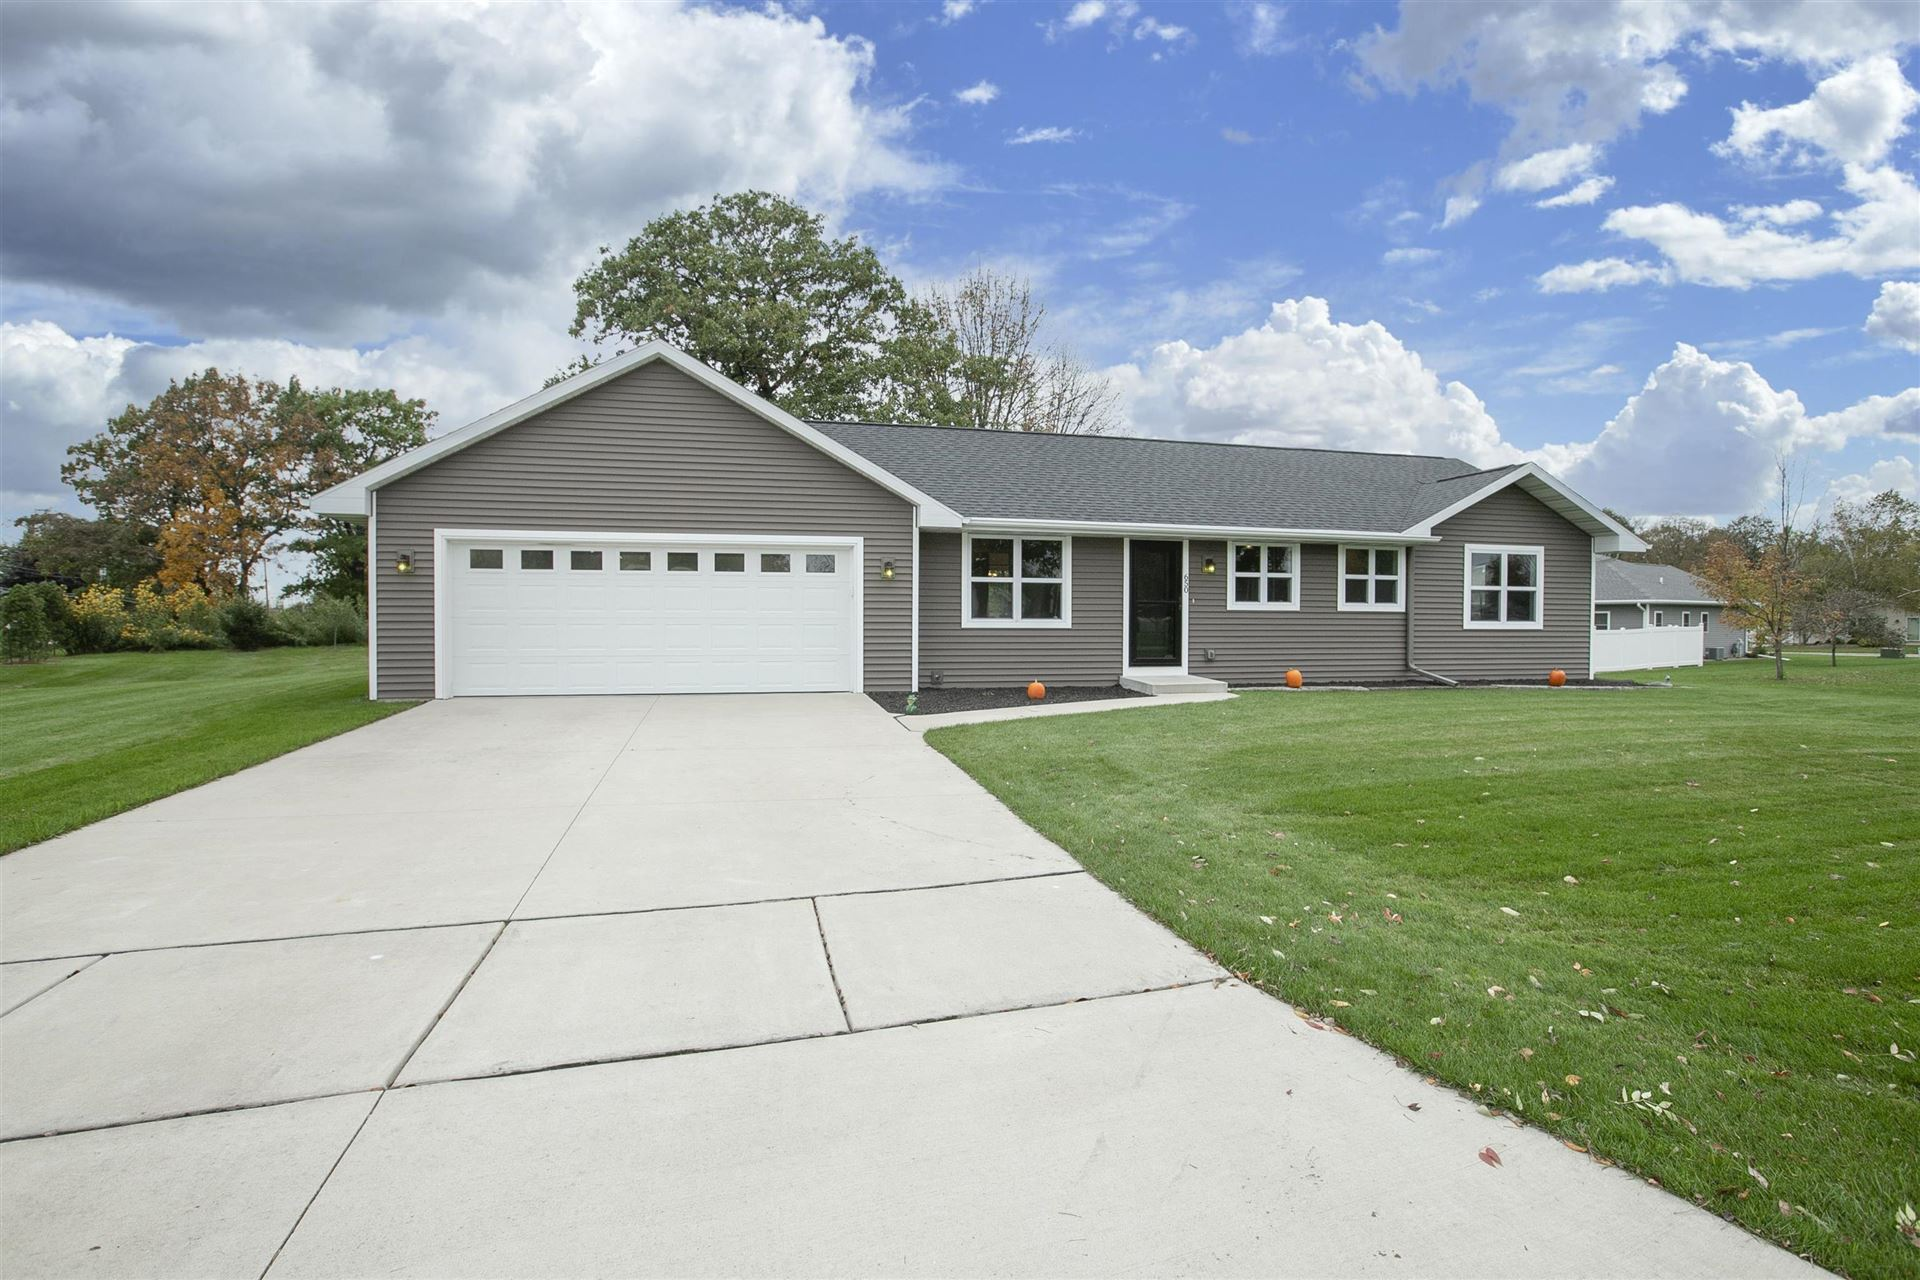 650 CHALLENGER Drive, Green Bay, WI 54311 - MLS#: 50249738